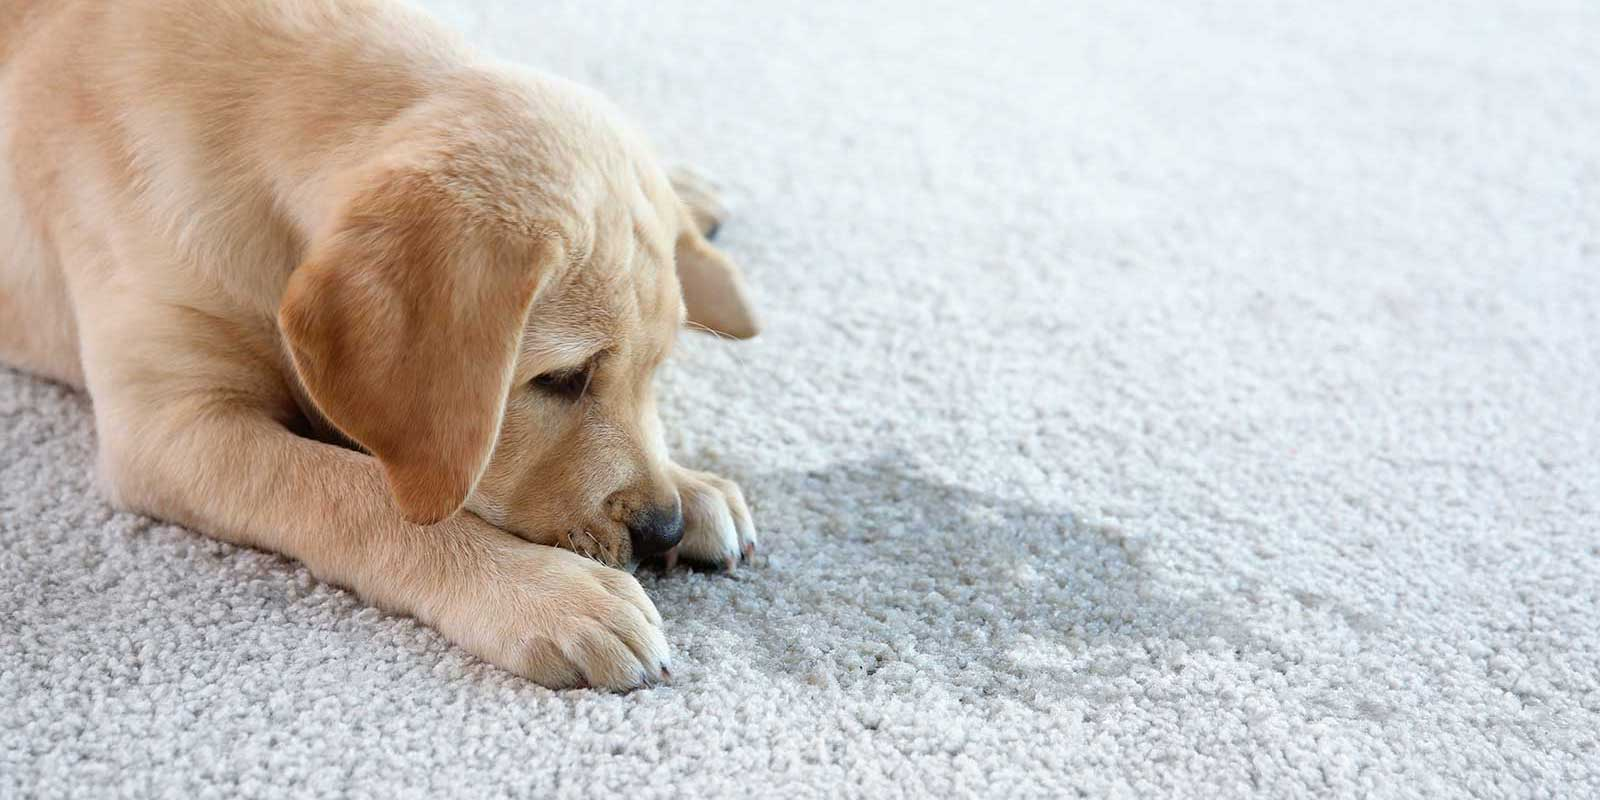 dog lying next to urine spot which requires a professional pet odor removal service